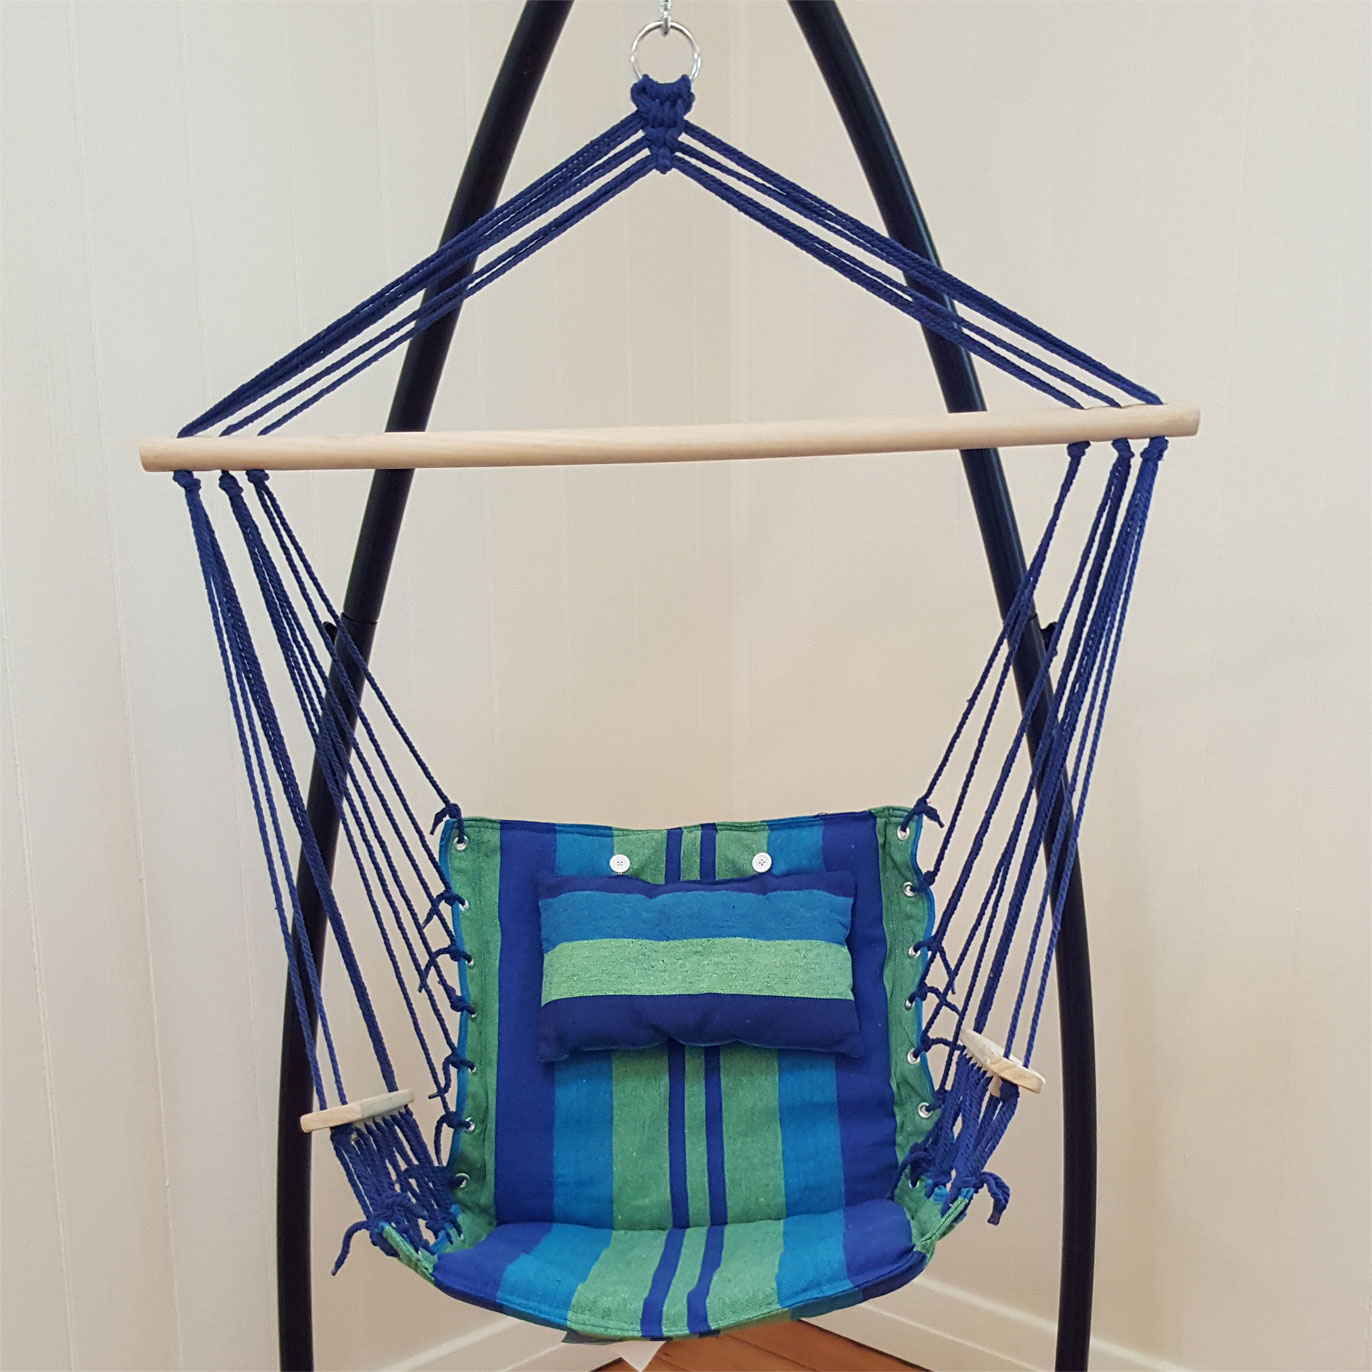 Blue Padded Hammock Chair With Wooden Arm Rests And Pillow ...